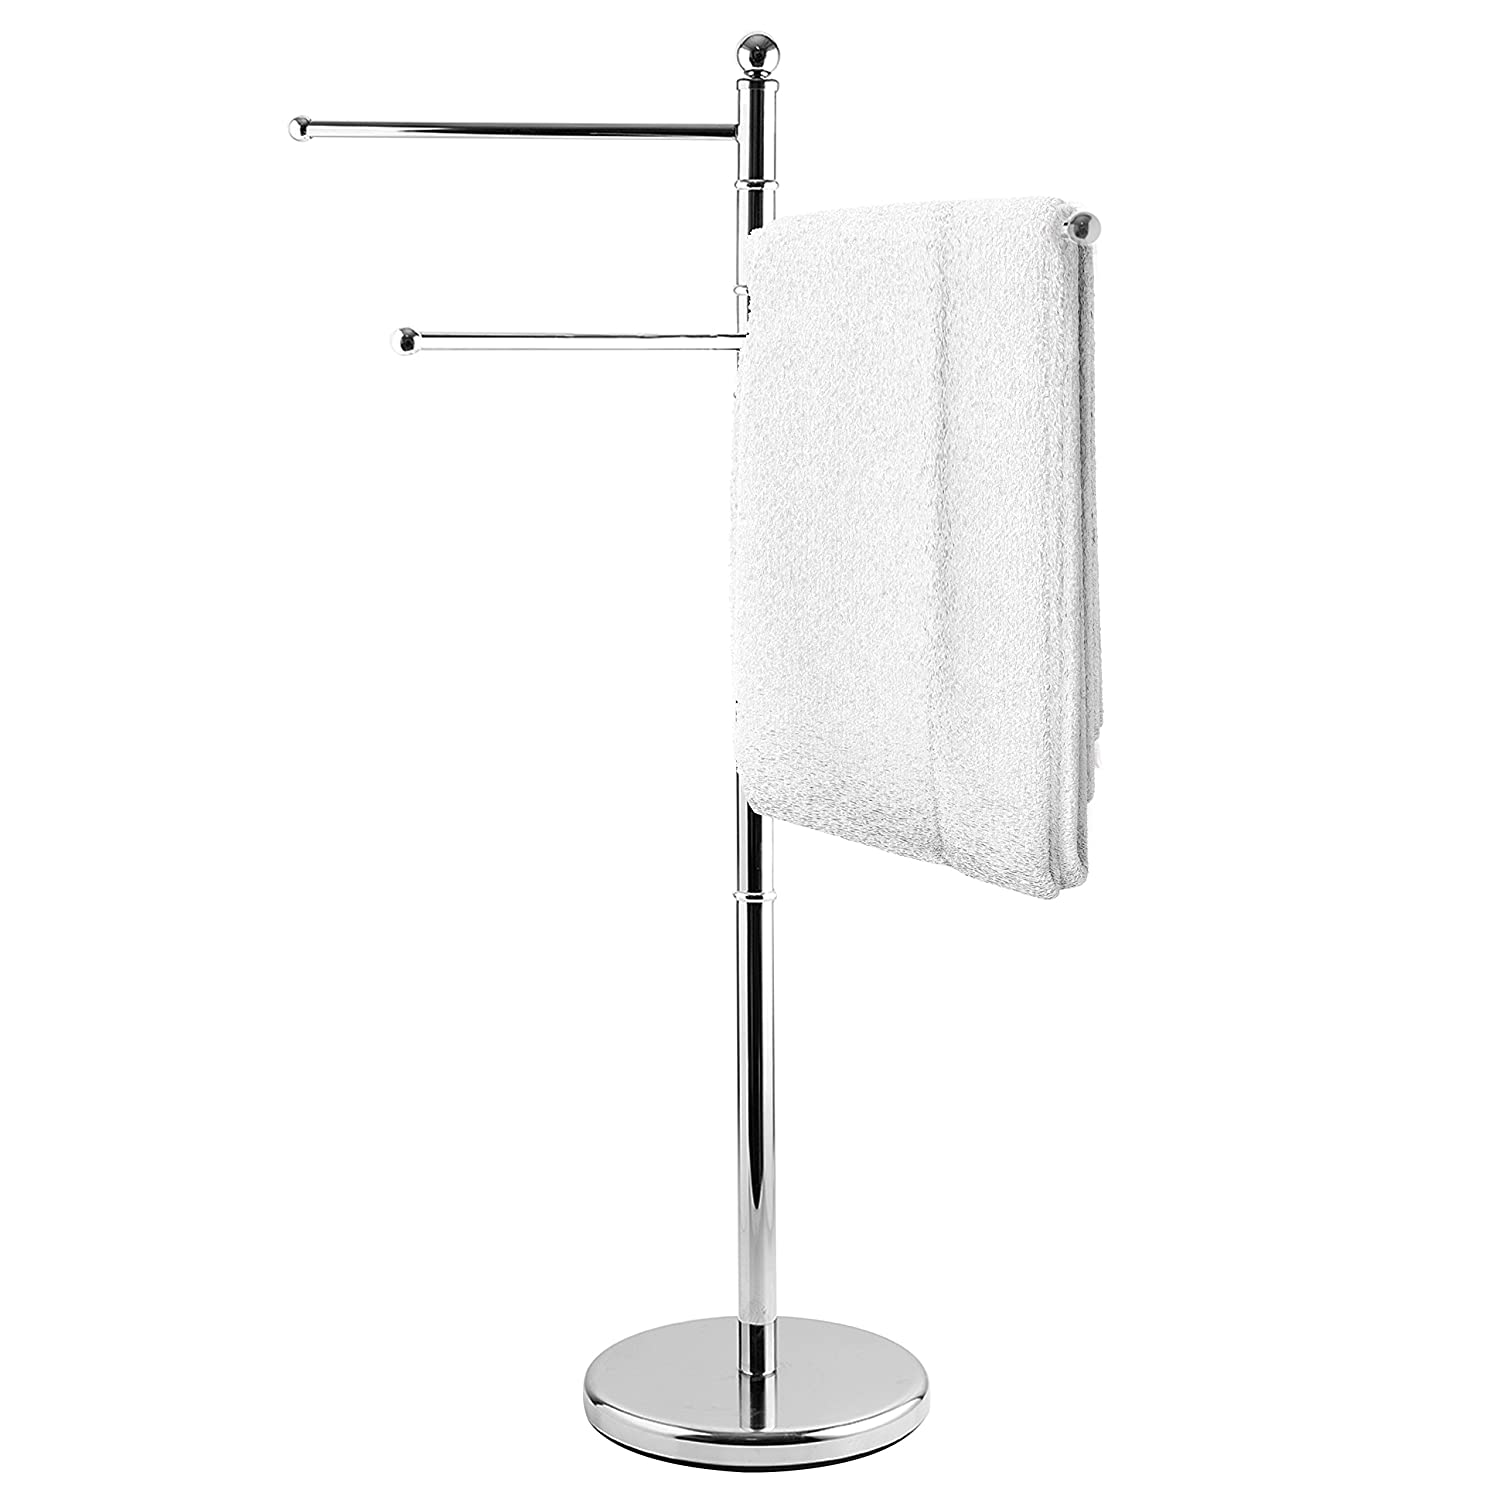 MyGift 40-Inch Freestanding Stainless Steel Bathroom Towel/Kitchen Towel Rack Stand with 3 Swivel Arms